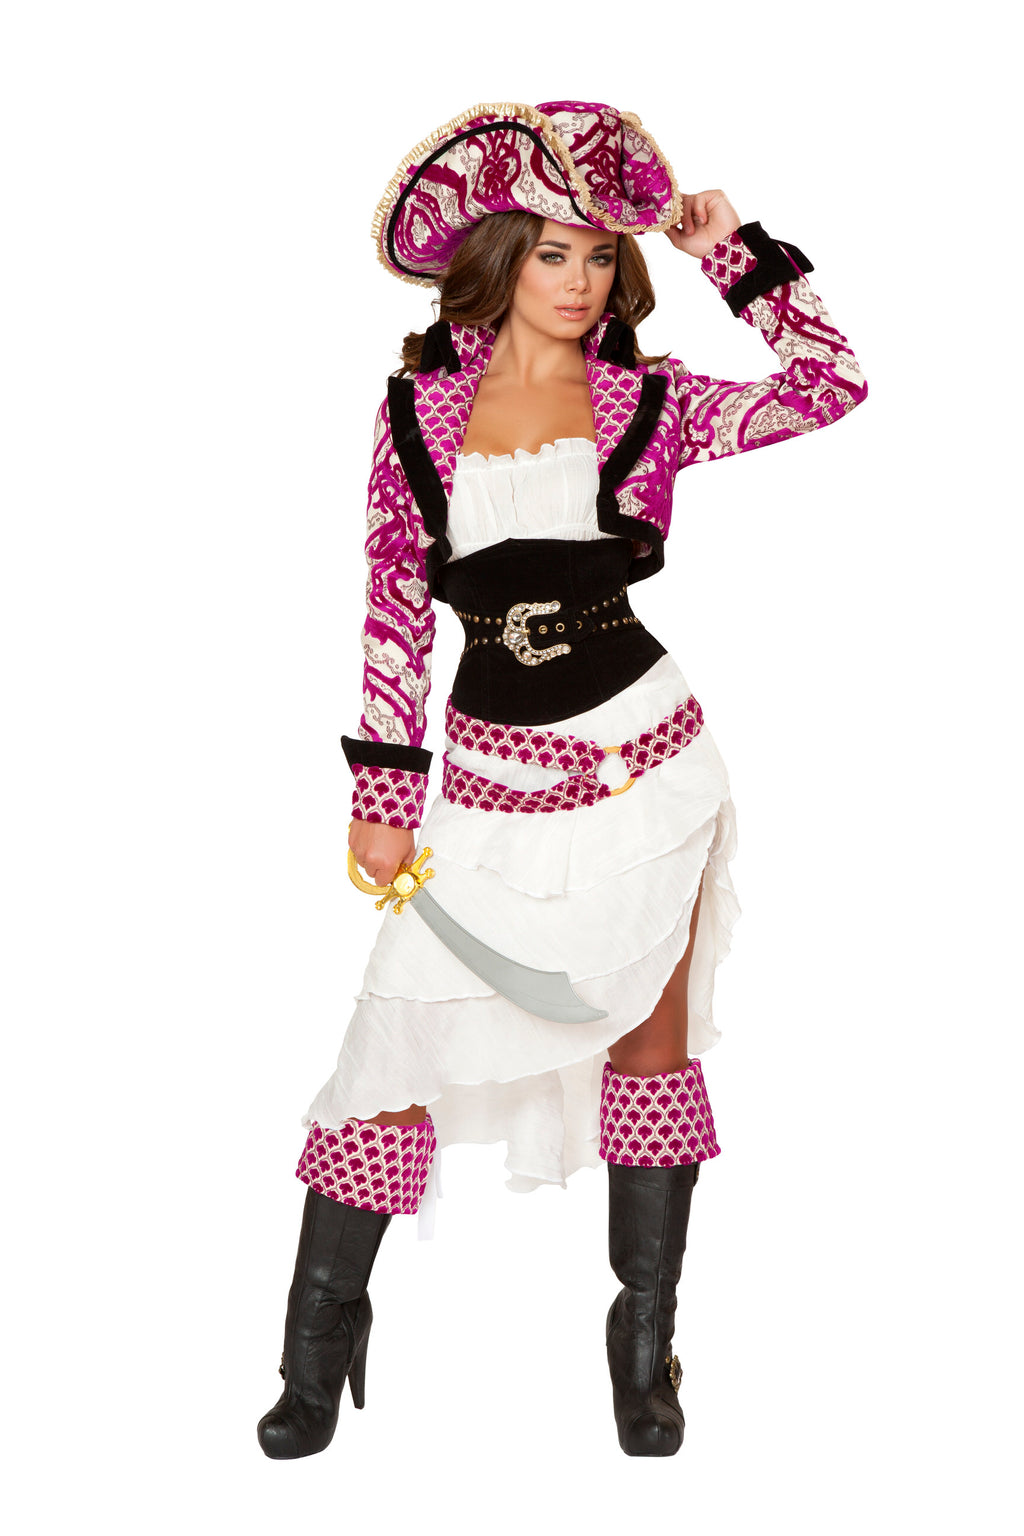 5-Piece-Pirate-Jacket-Midi-Dress-Cincher-w/-Accessories-Party-Costume